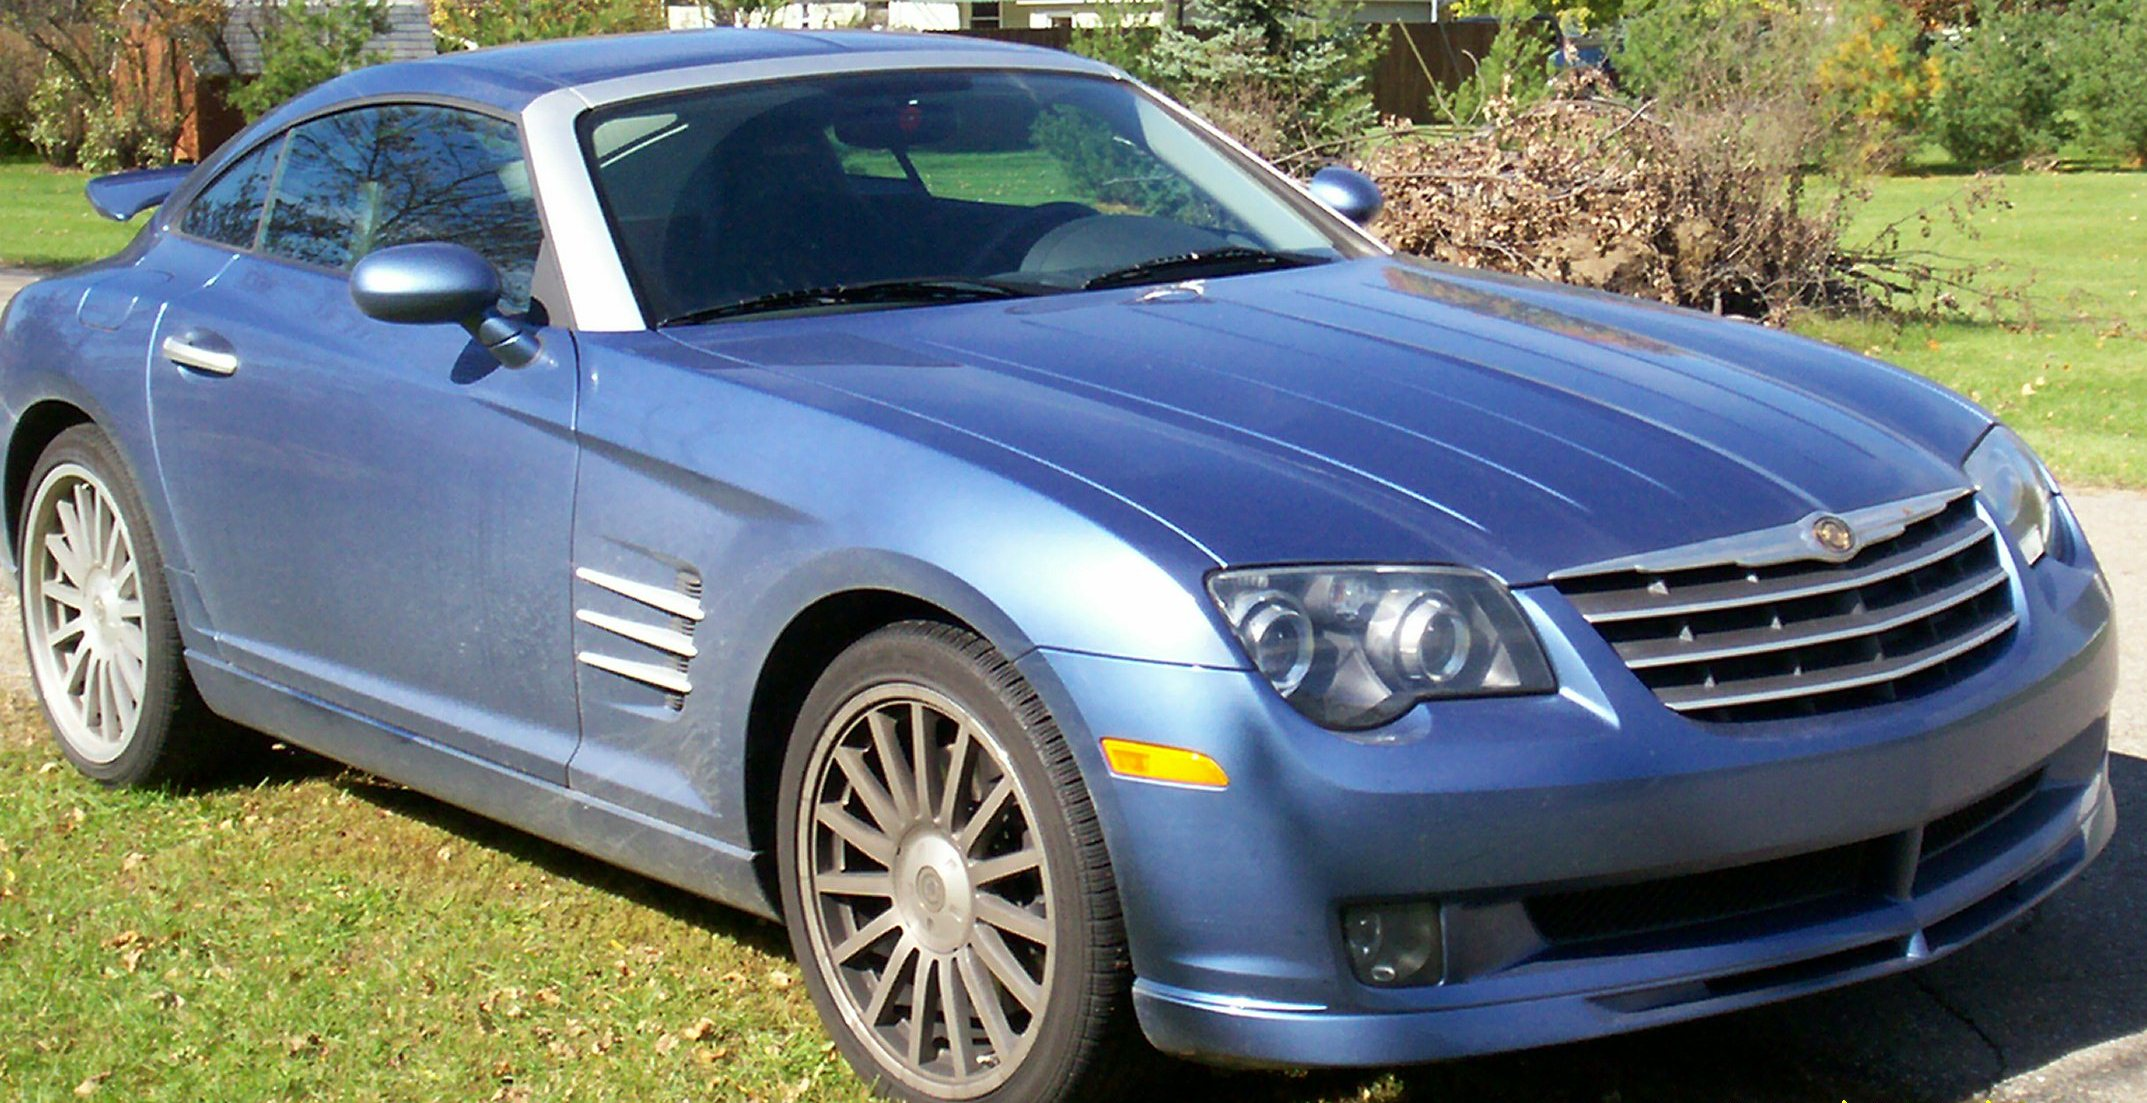 chrysler crossfire srt6. file2005 chrysler crossfire srt6 aerobluerightjpg srt6